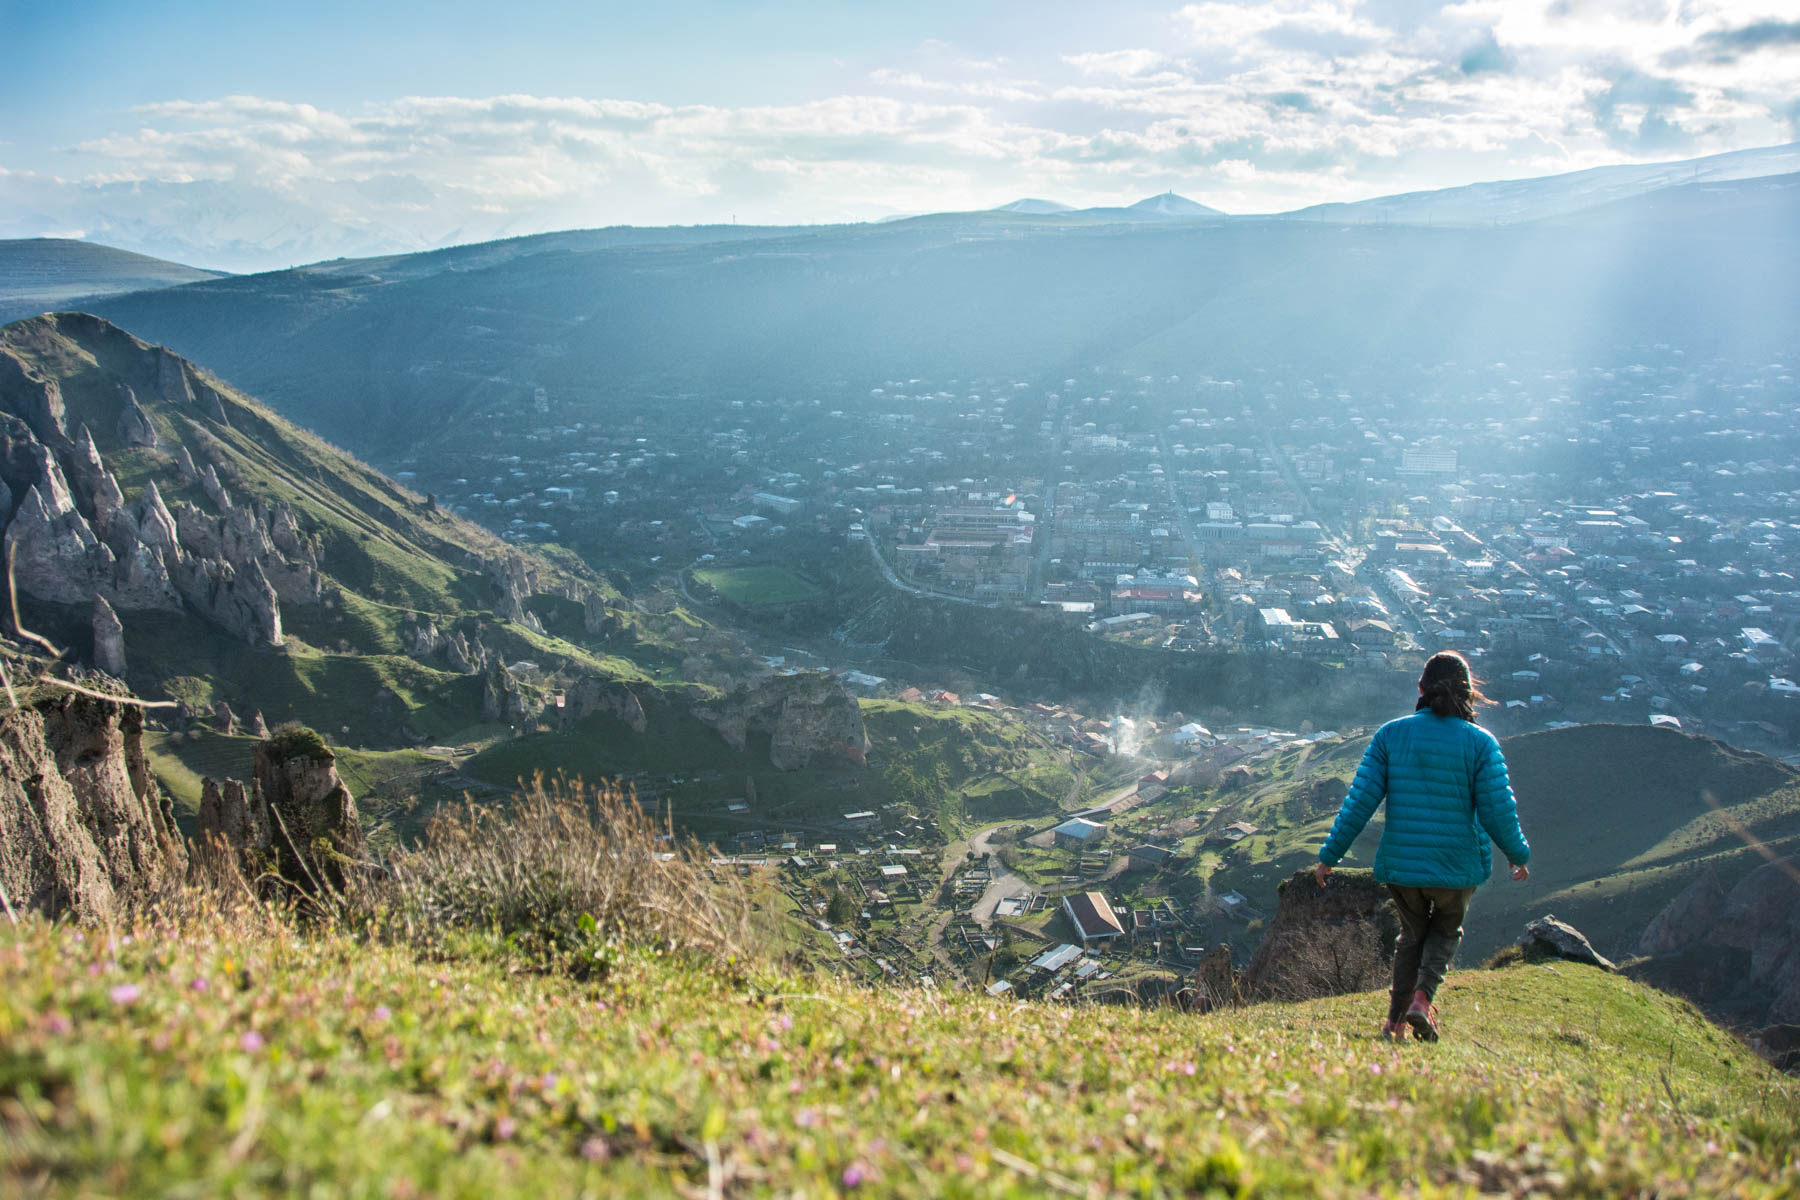 How to get to Tatev from Goris, Armenia - Running around on the mountains of Goris, Armenia